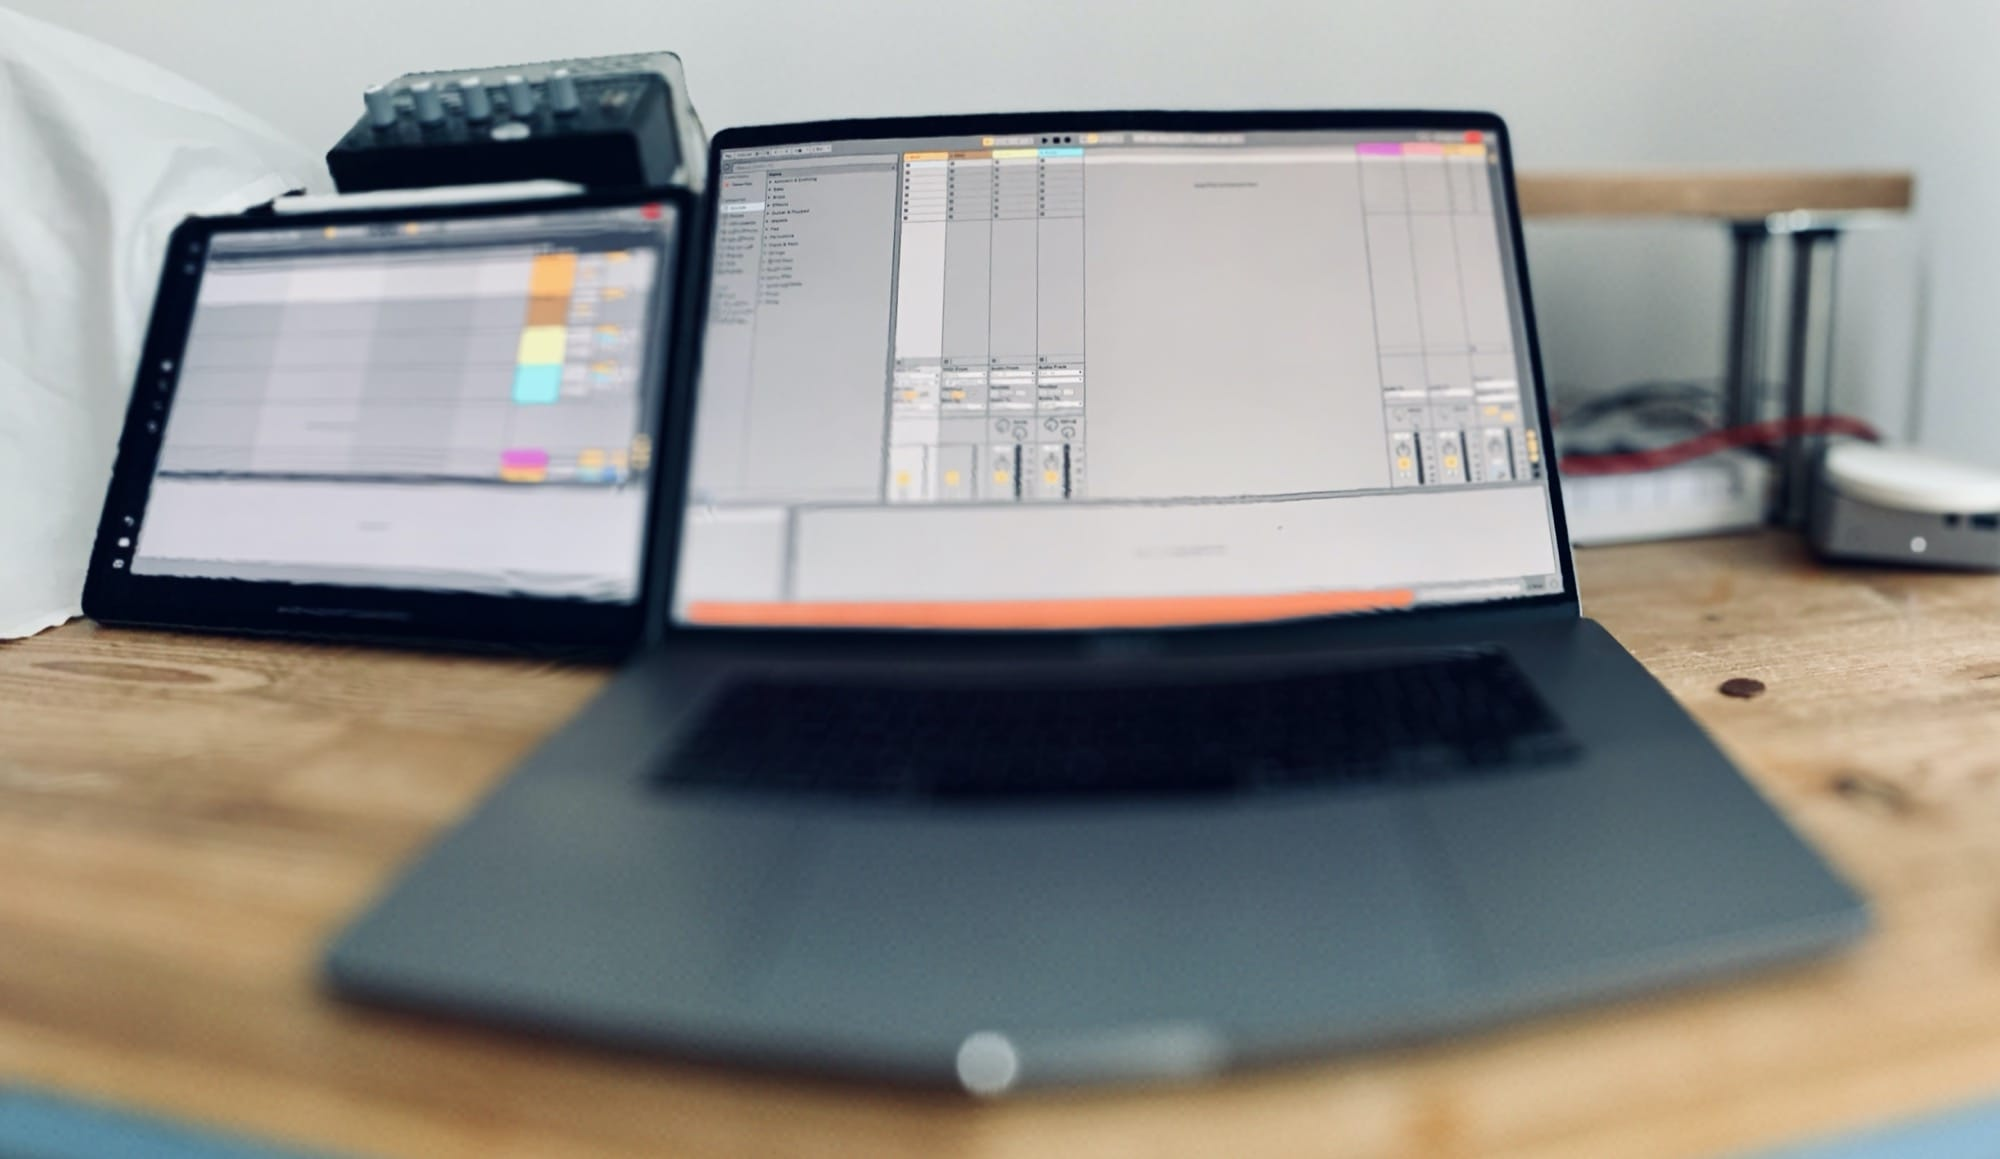 Ableton on a Mac and iPad, simultaneously.